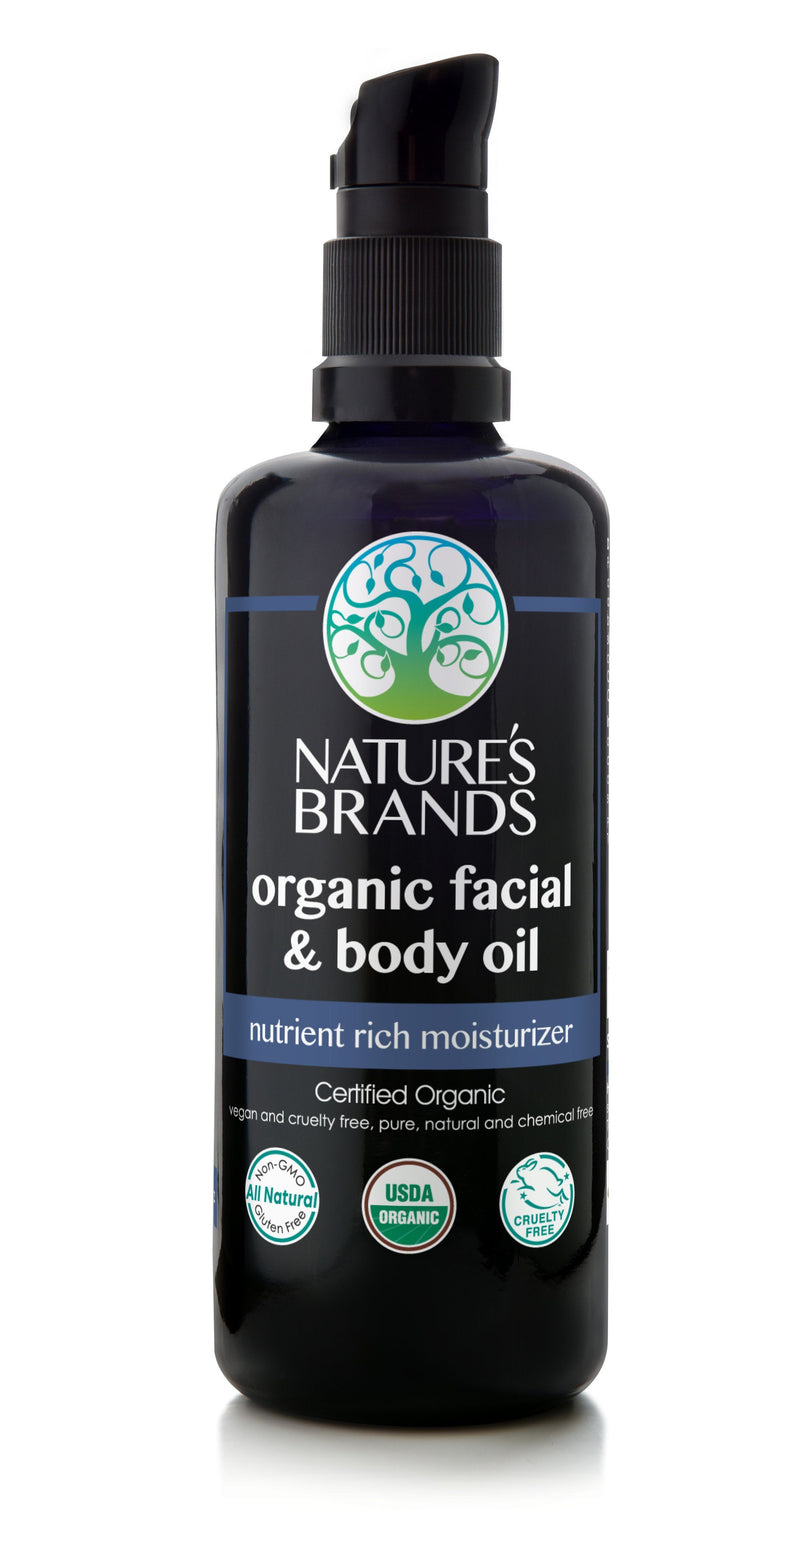 Herbal Choice Mari Organic Facial & Body Oil - Herbal Choice Mari Organic Facial & Body Oil - 3.4floz